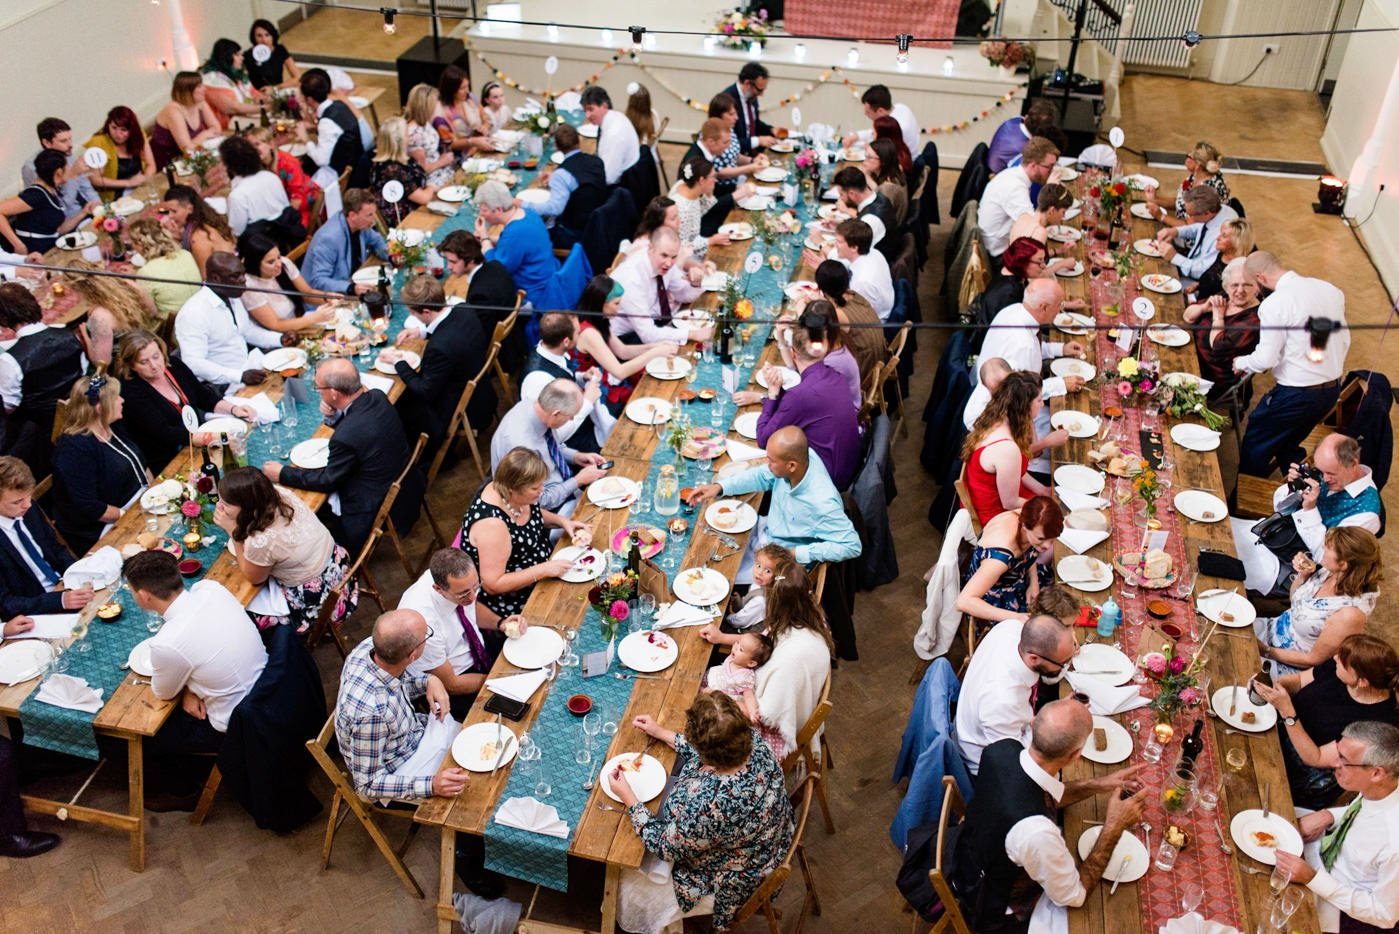 Guests eating dinner at Tab Venue wedding